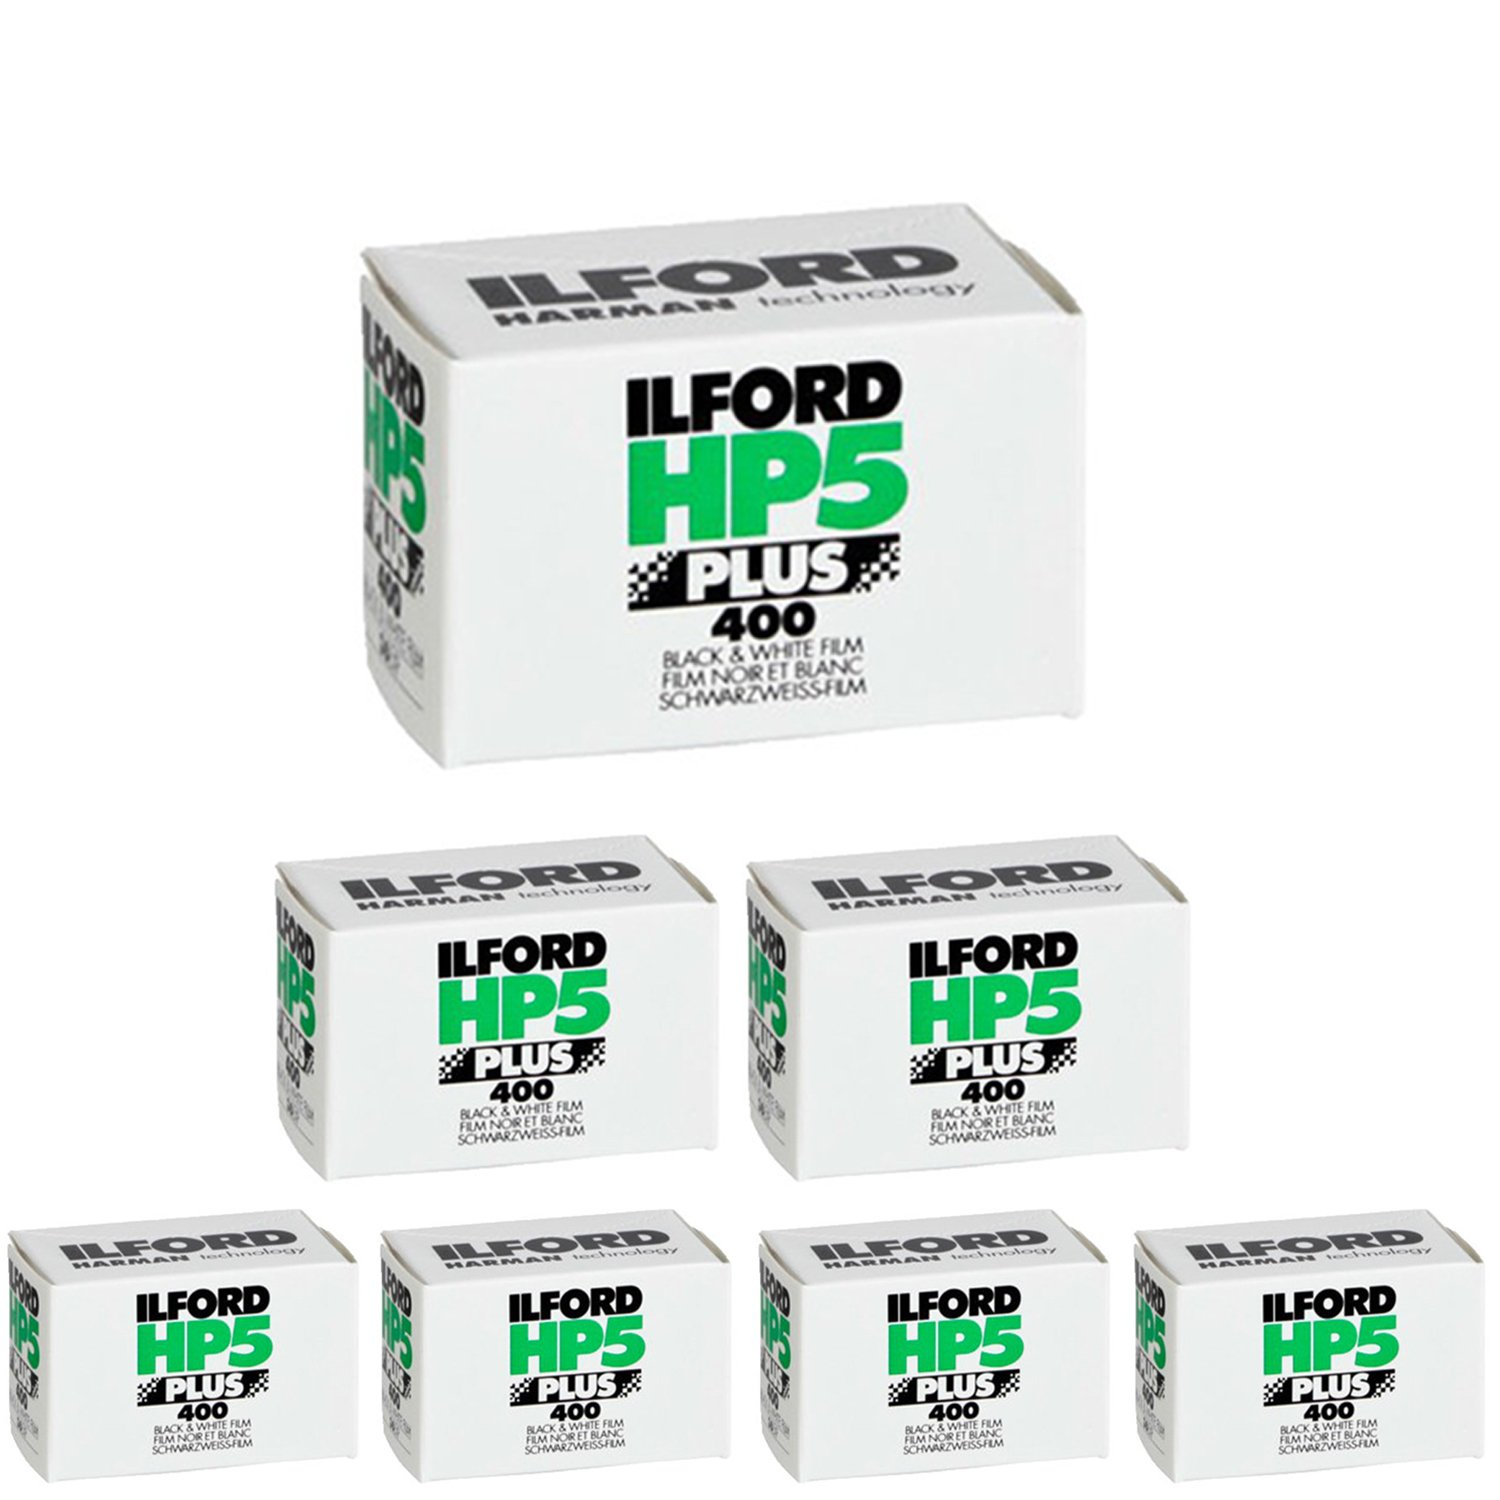 Ilford 1574577 HP5 Plus, Black and White Print Film, 35 mm, ISO 400, 36 Exposures pack of 7